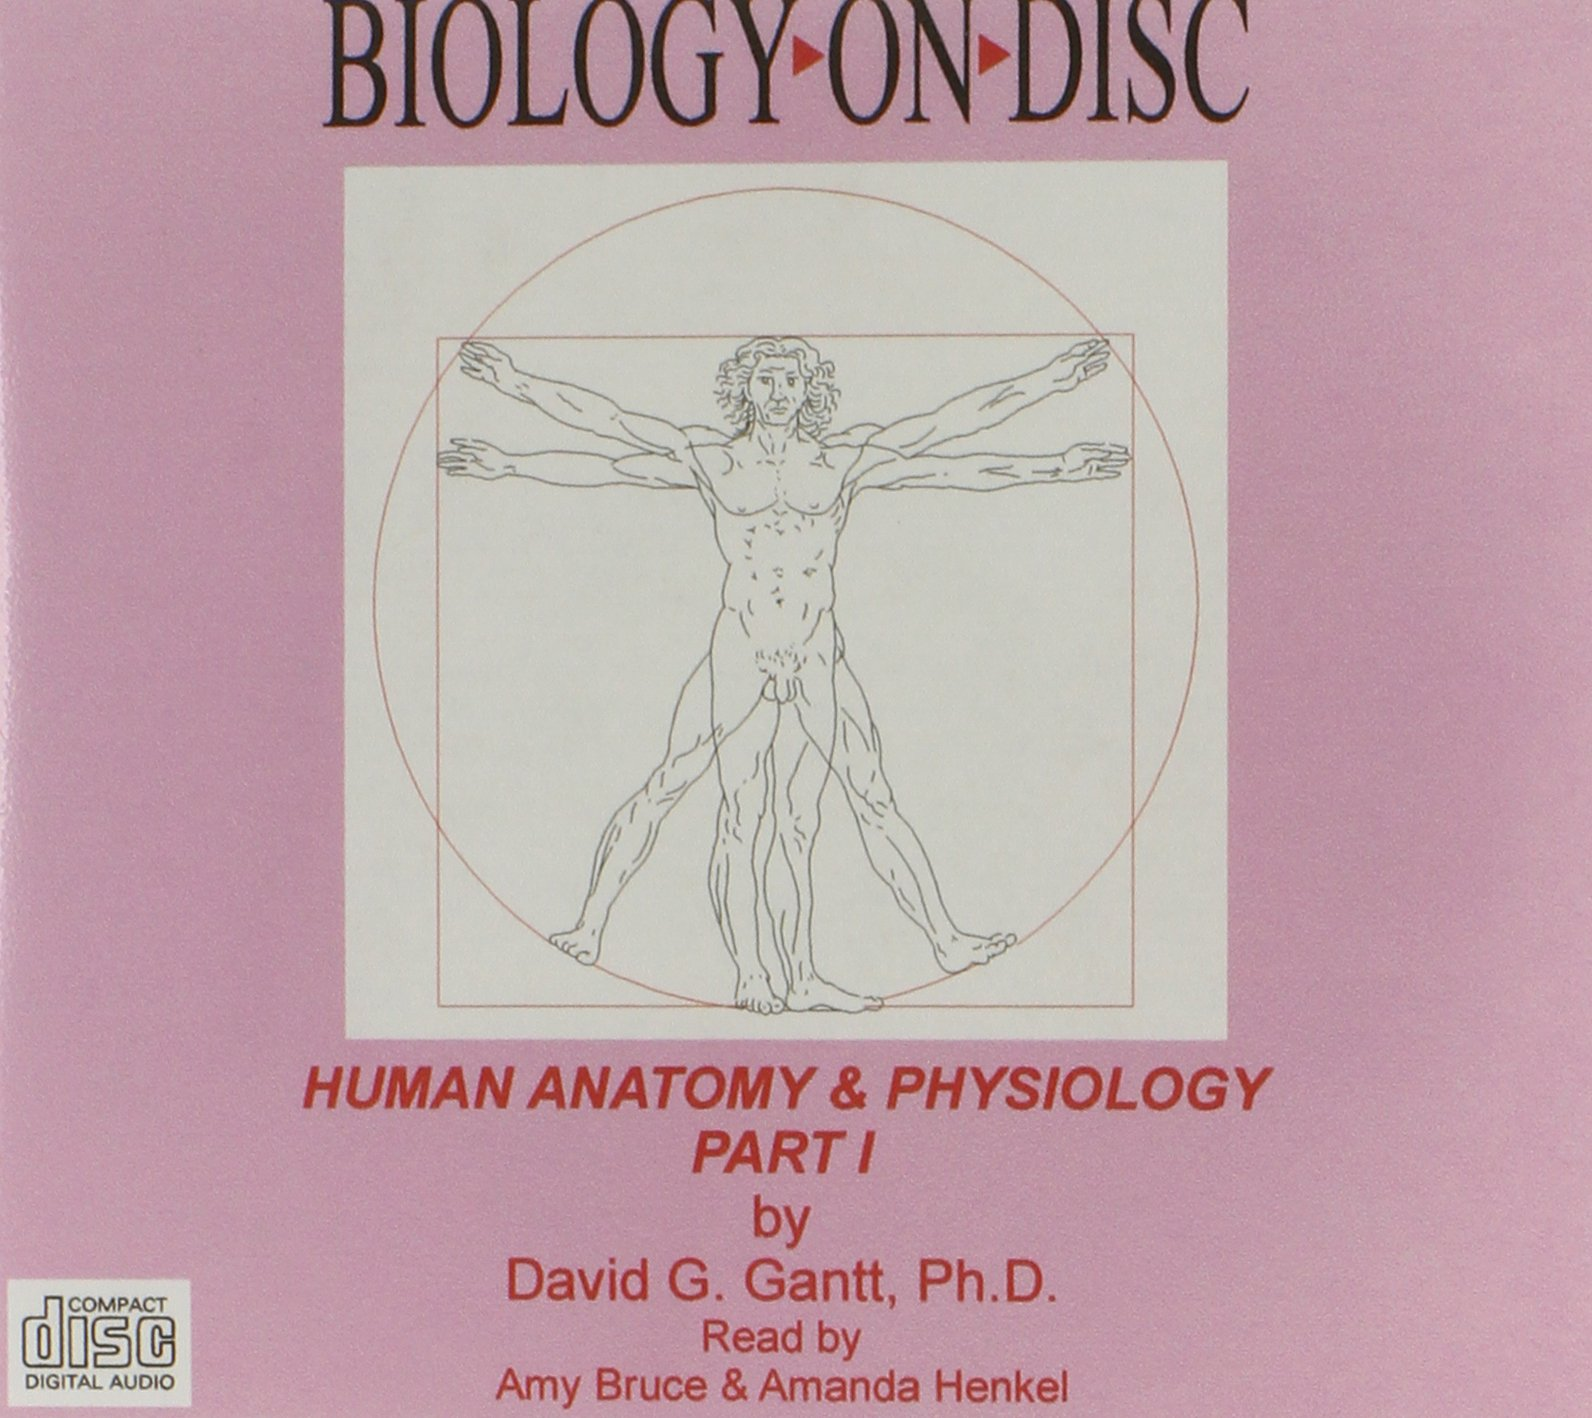 Human Anatomy & Physiology (Biology-on-disc): Amazon.co.uk: David G ...